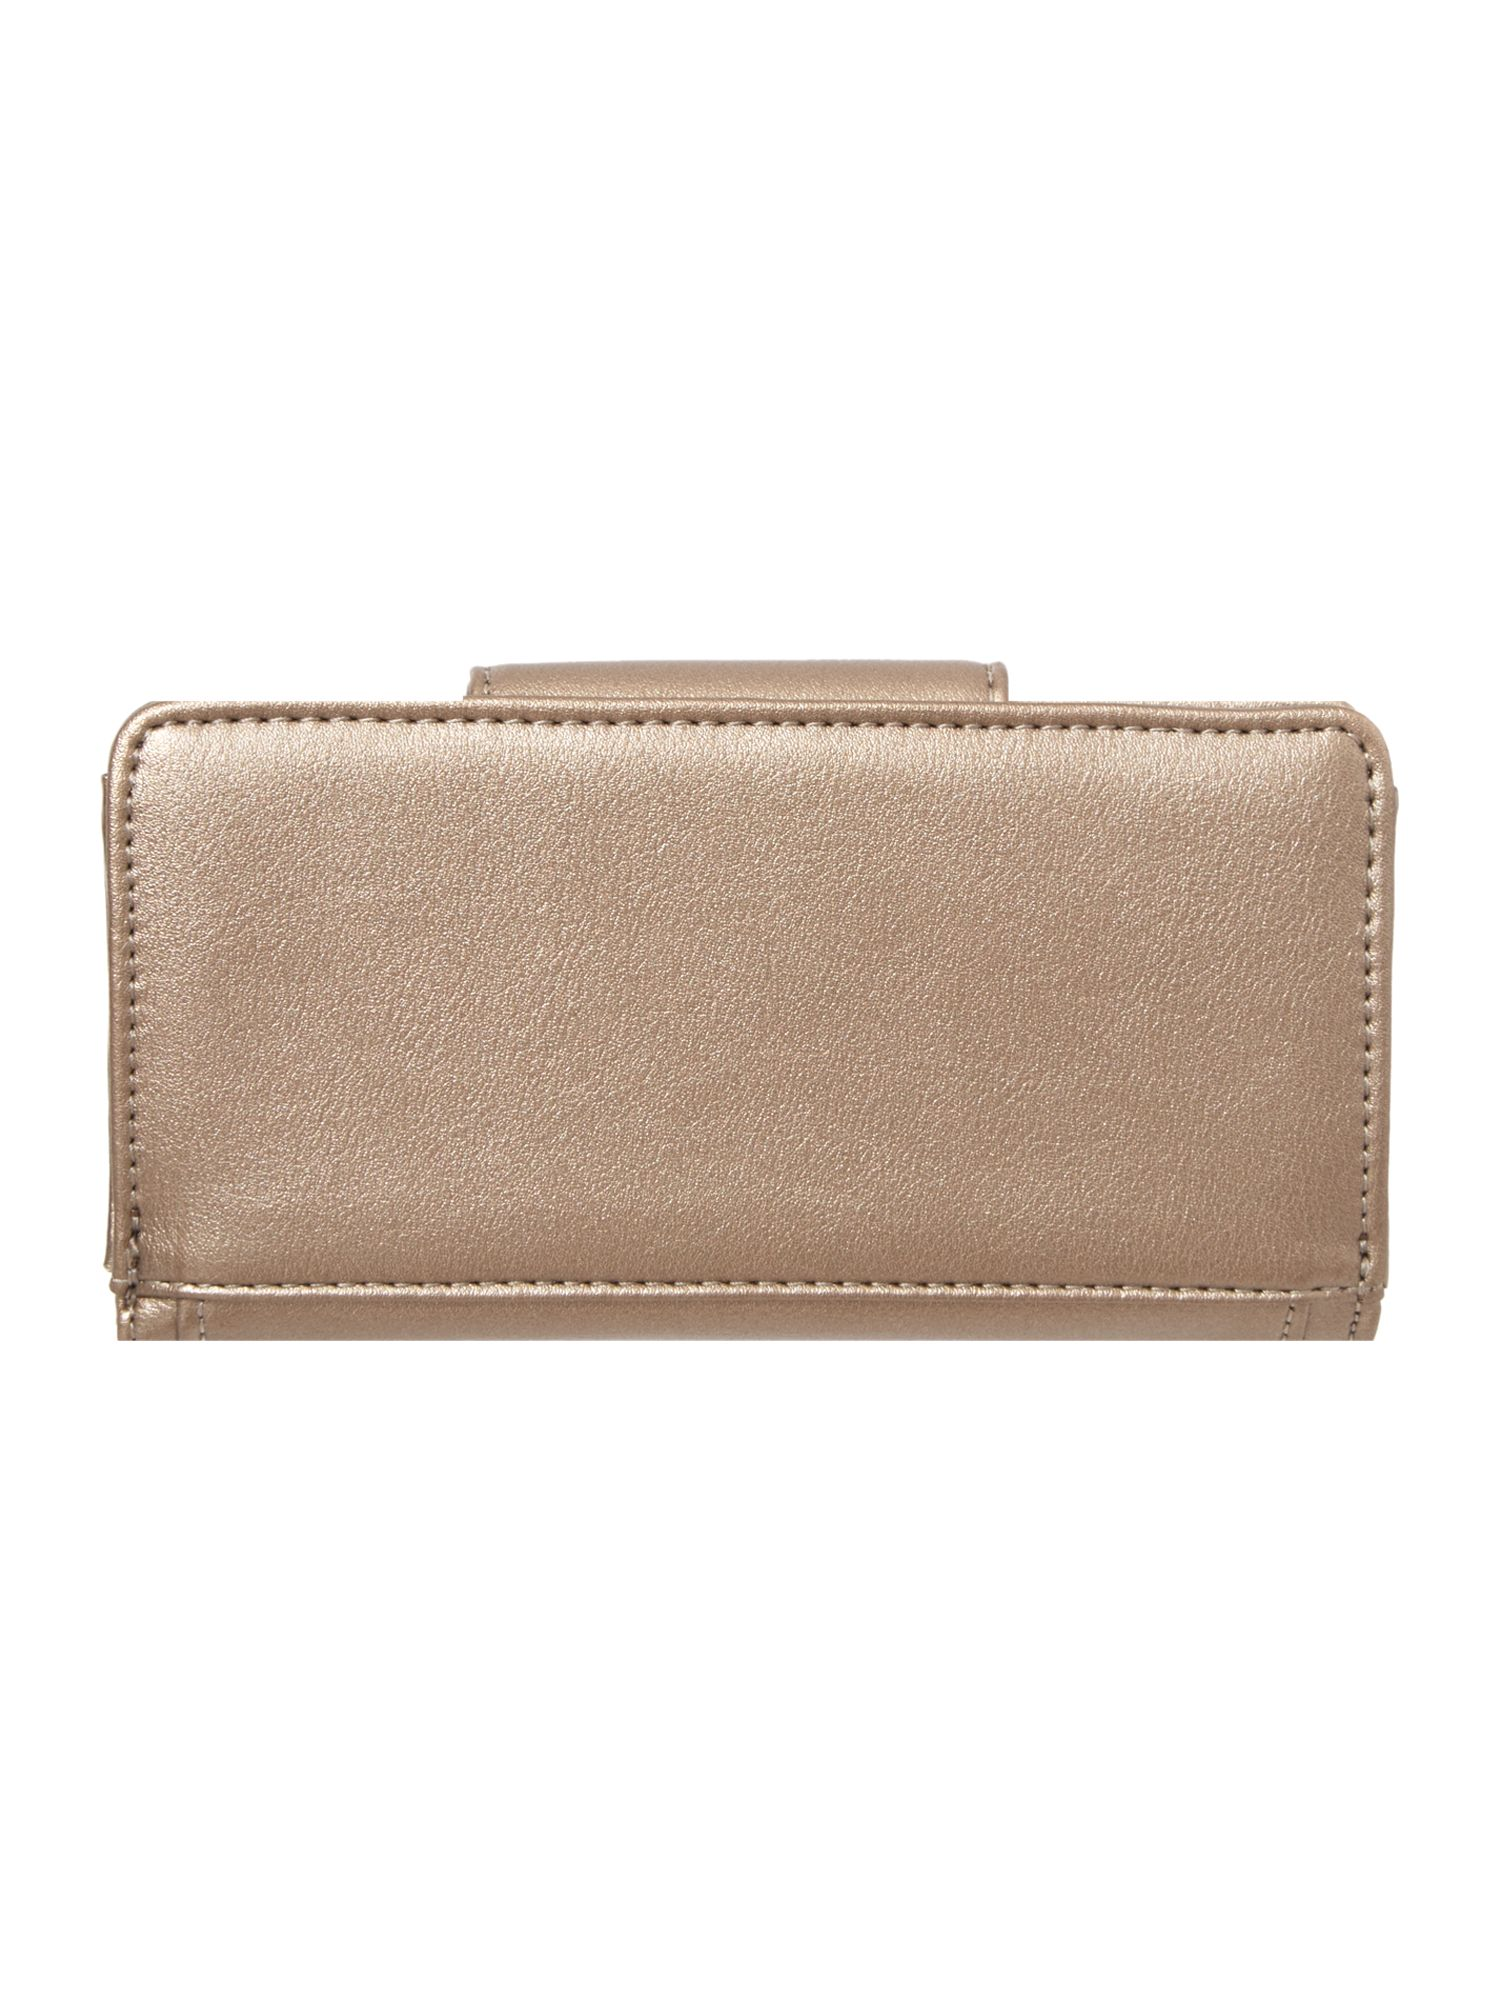 Angel gold ziparound purse